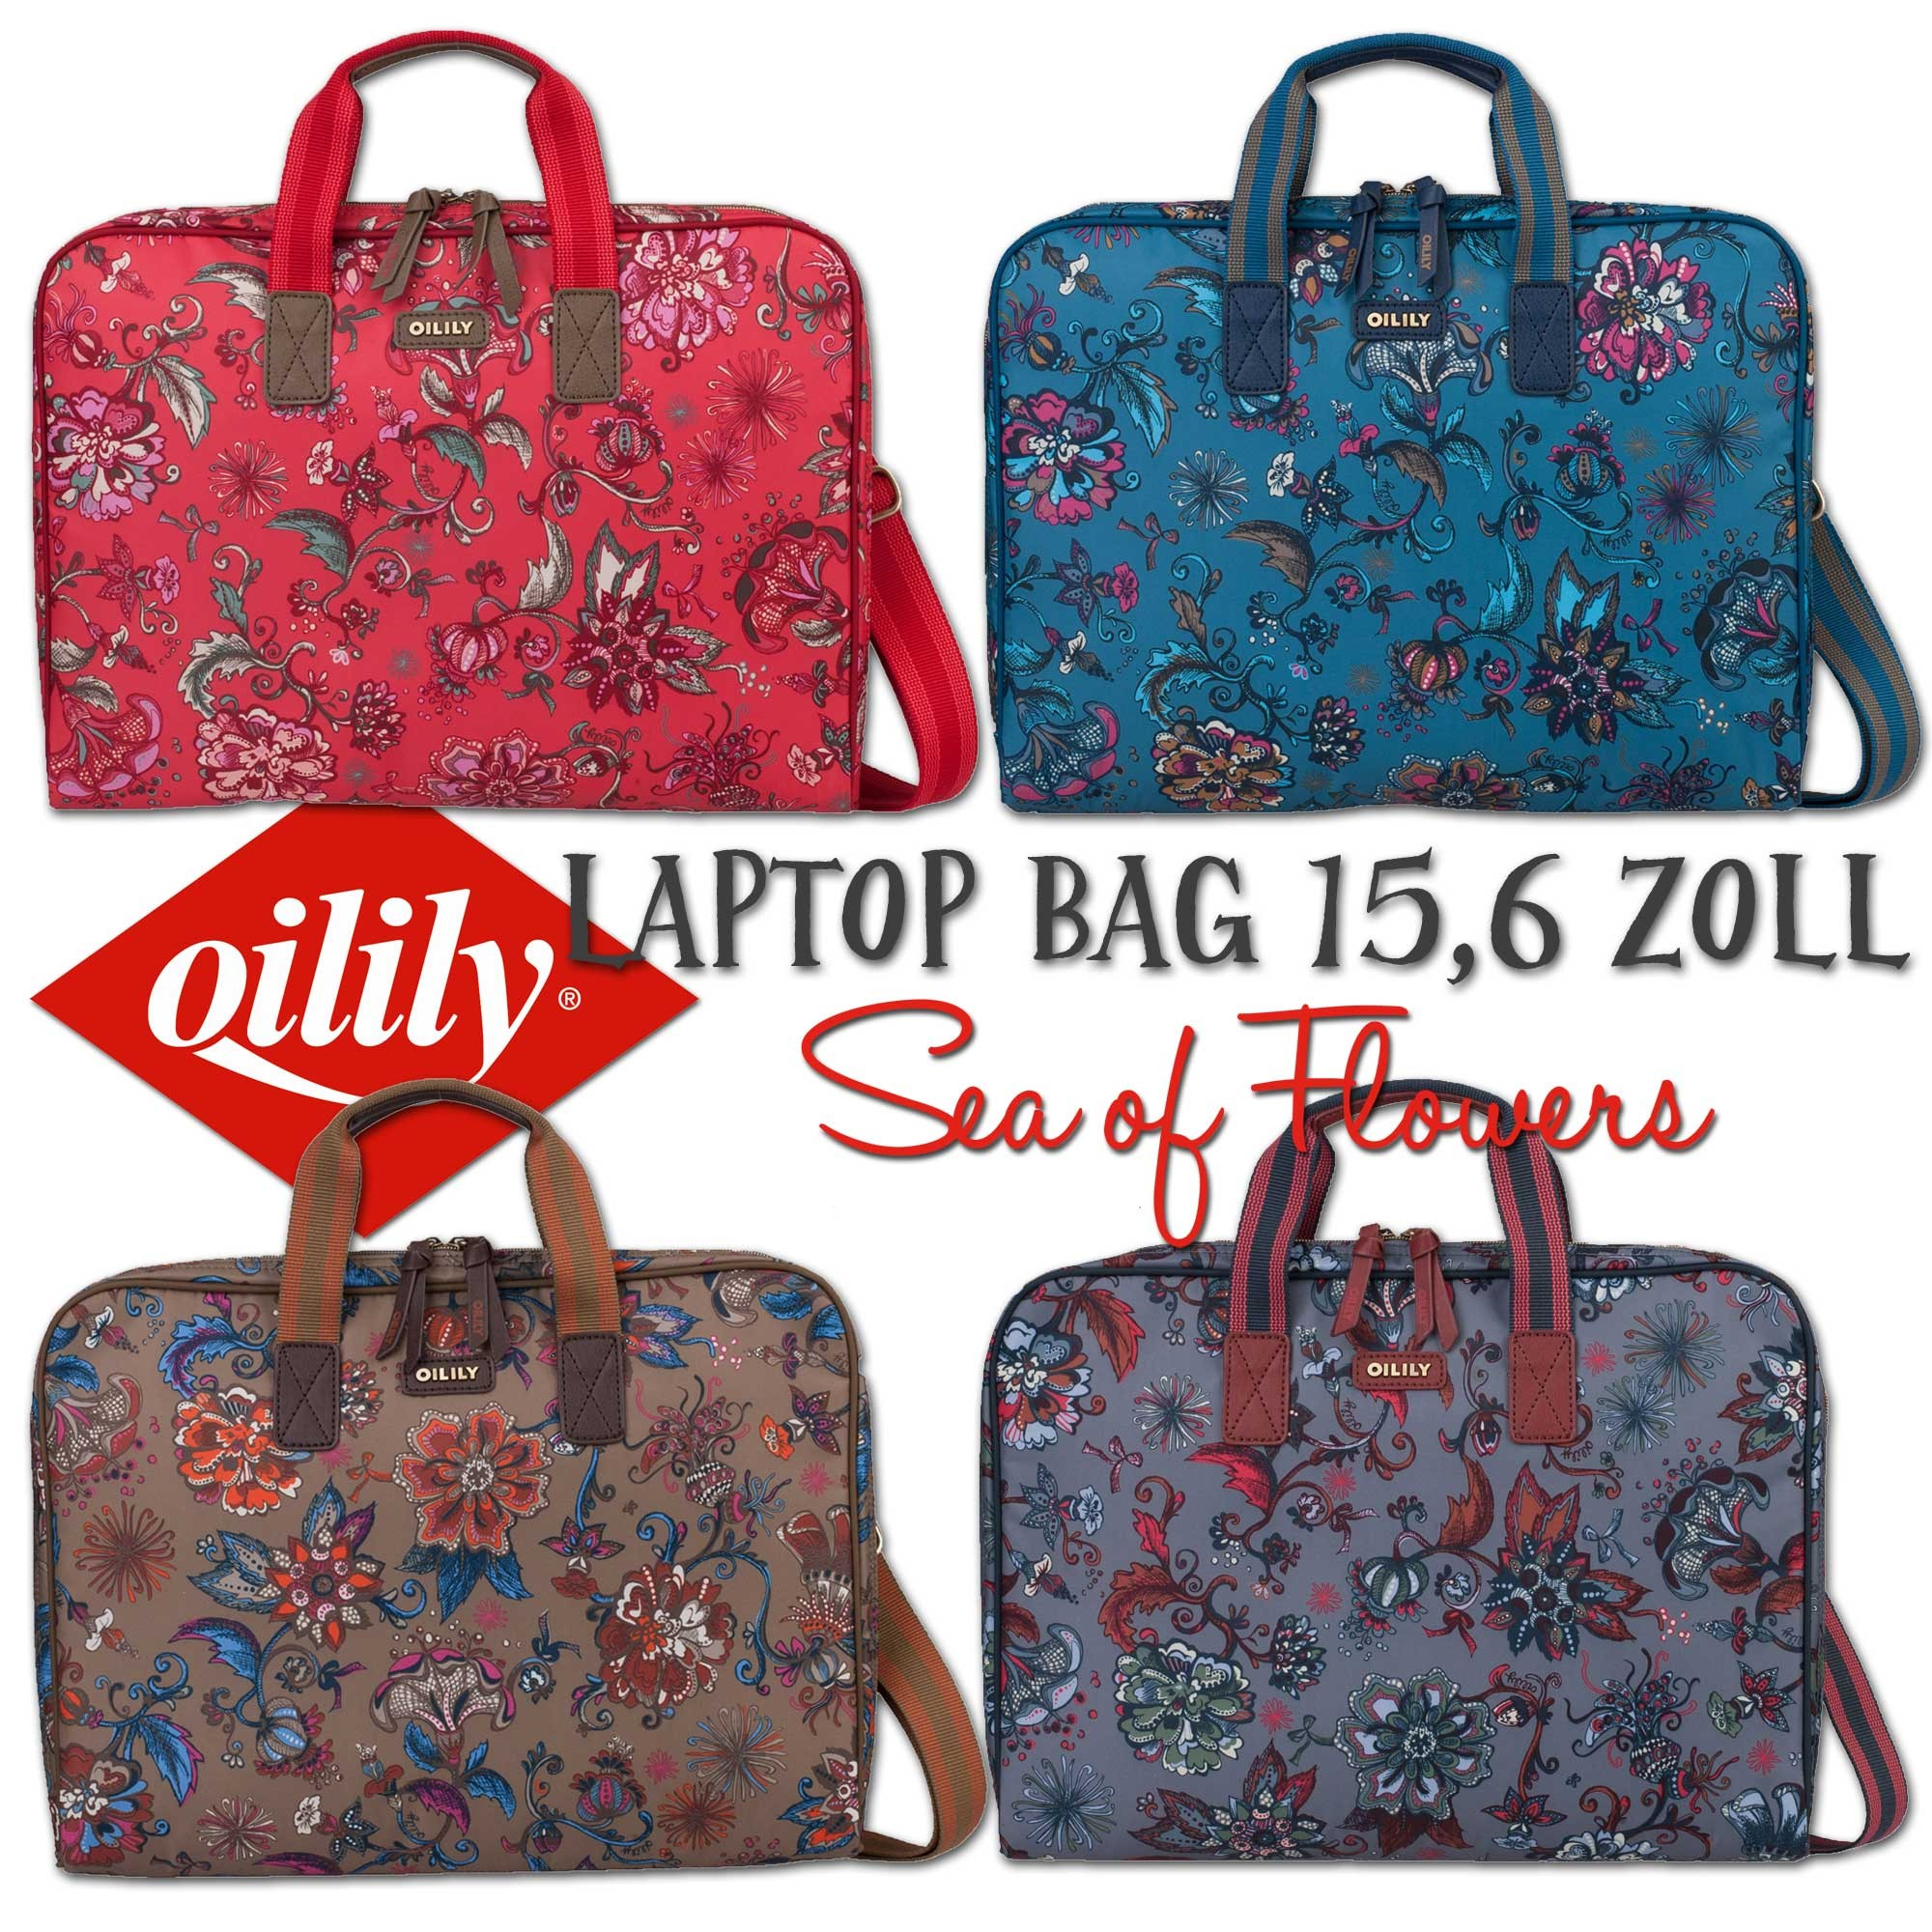 oilily laptoptasche laptop bag 15 6 zoll sea of flowers. Black Bedroom Furniture Sets. Home Design Ideas